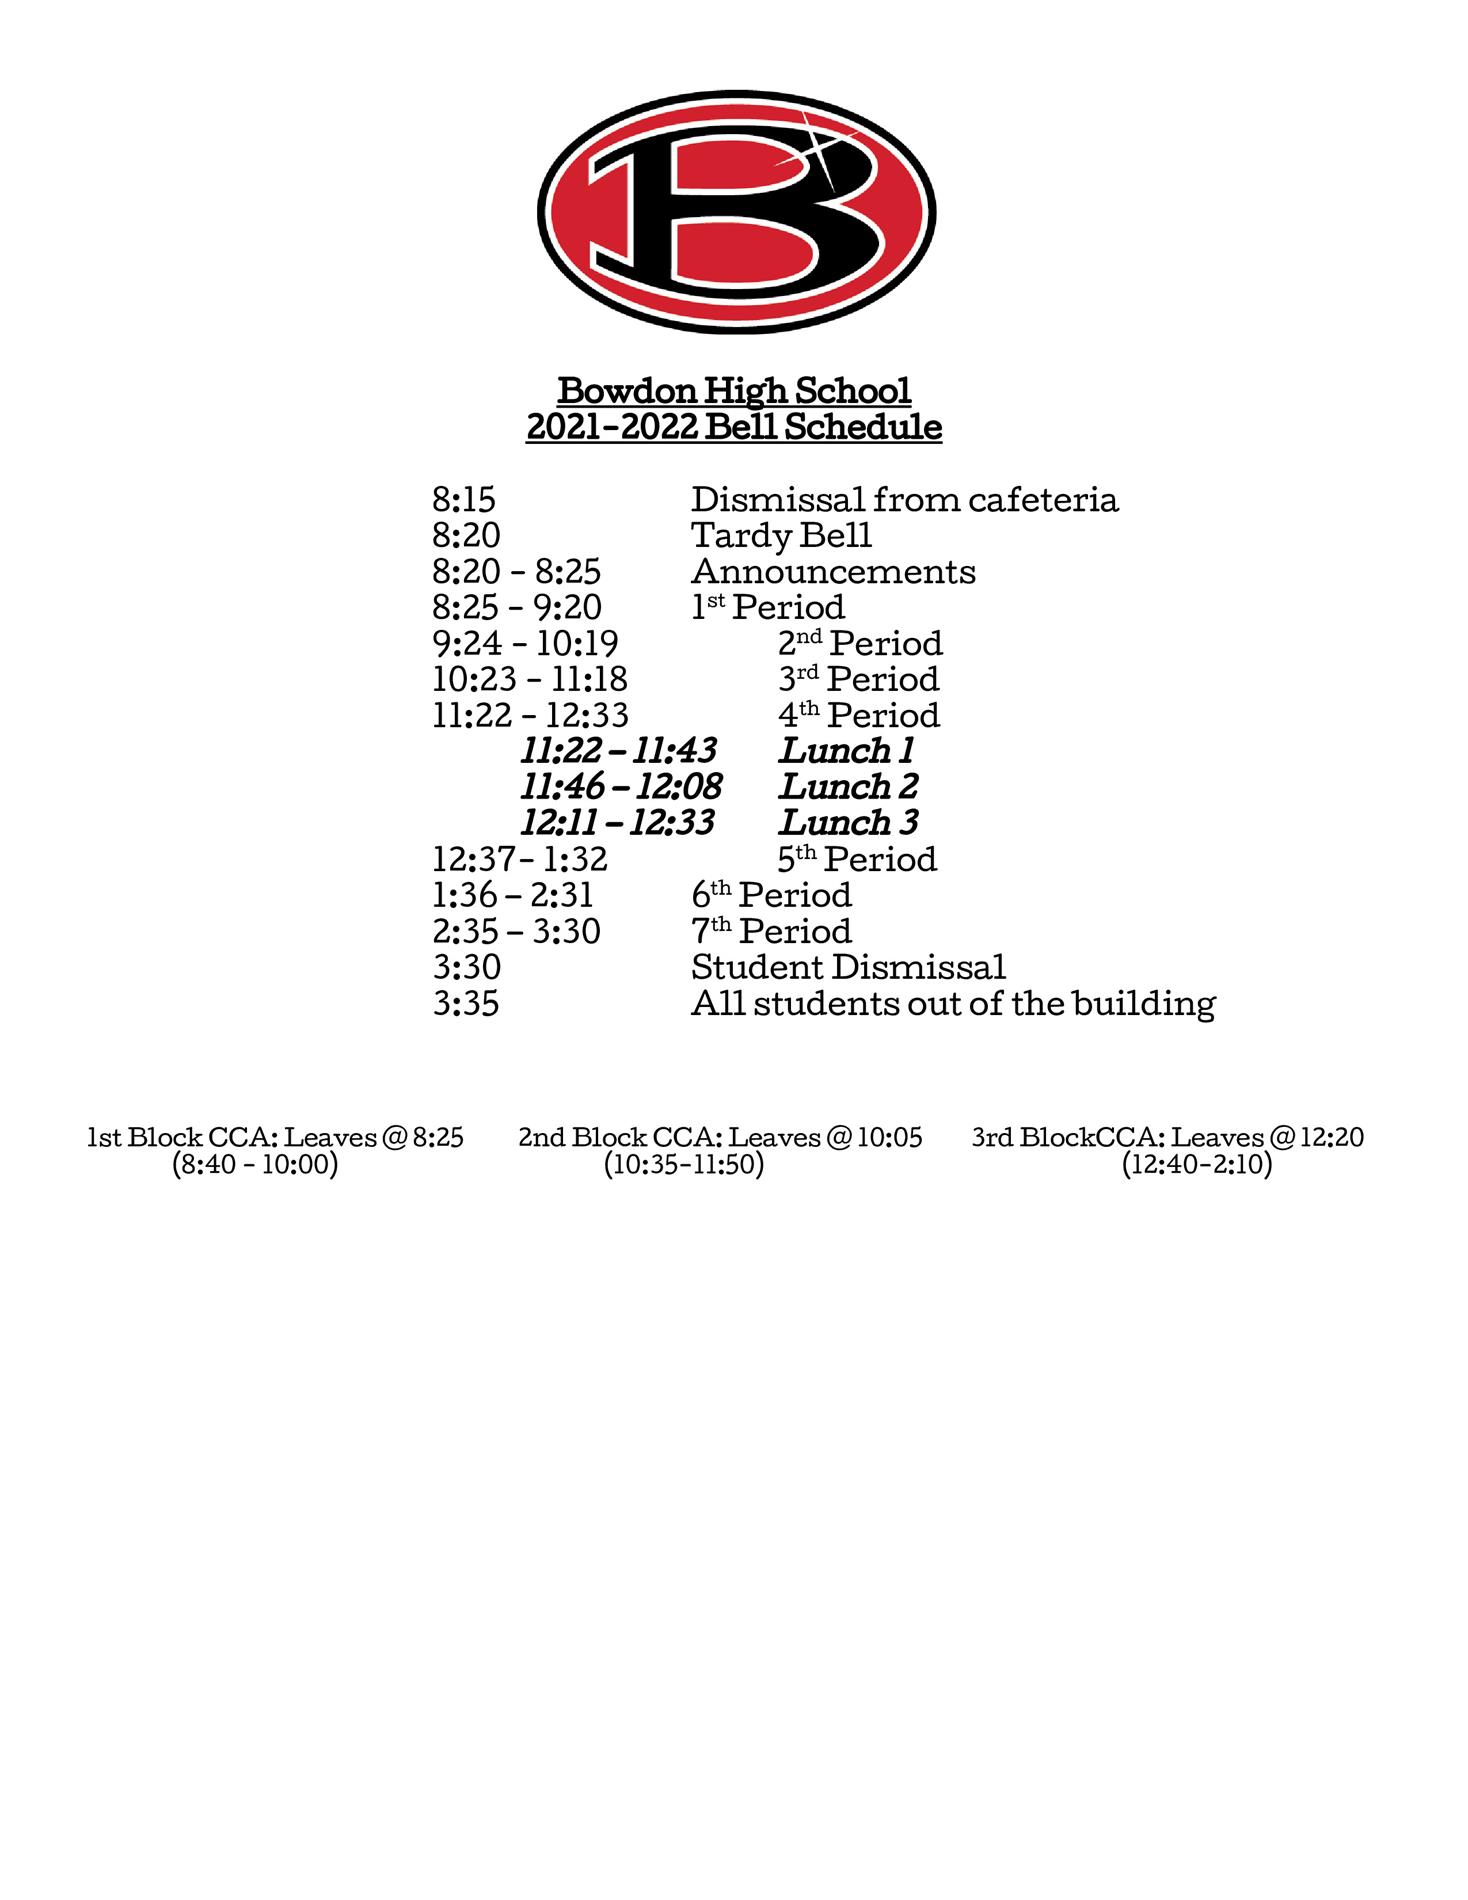 Academic Bell Schedule for 2021-2022